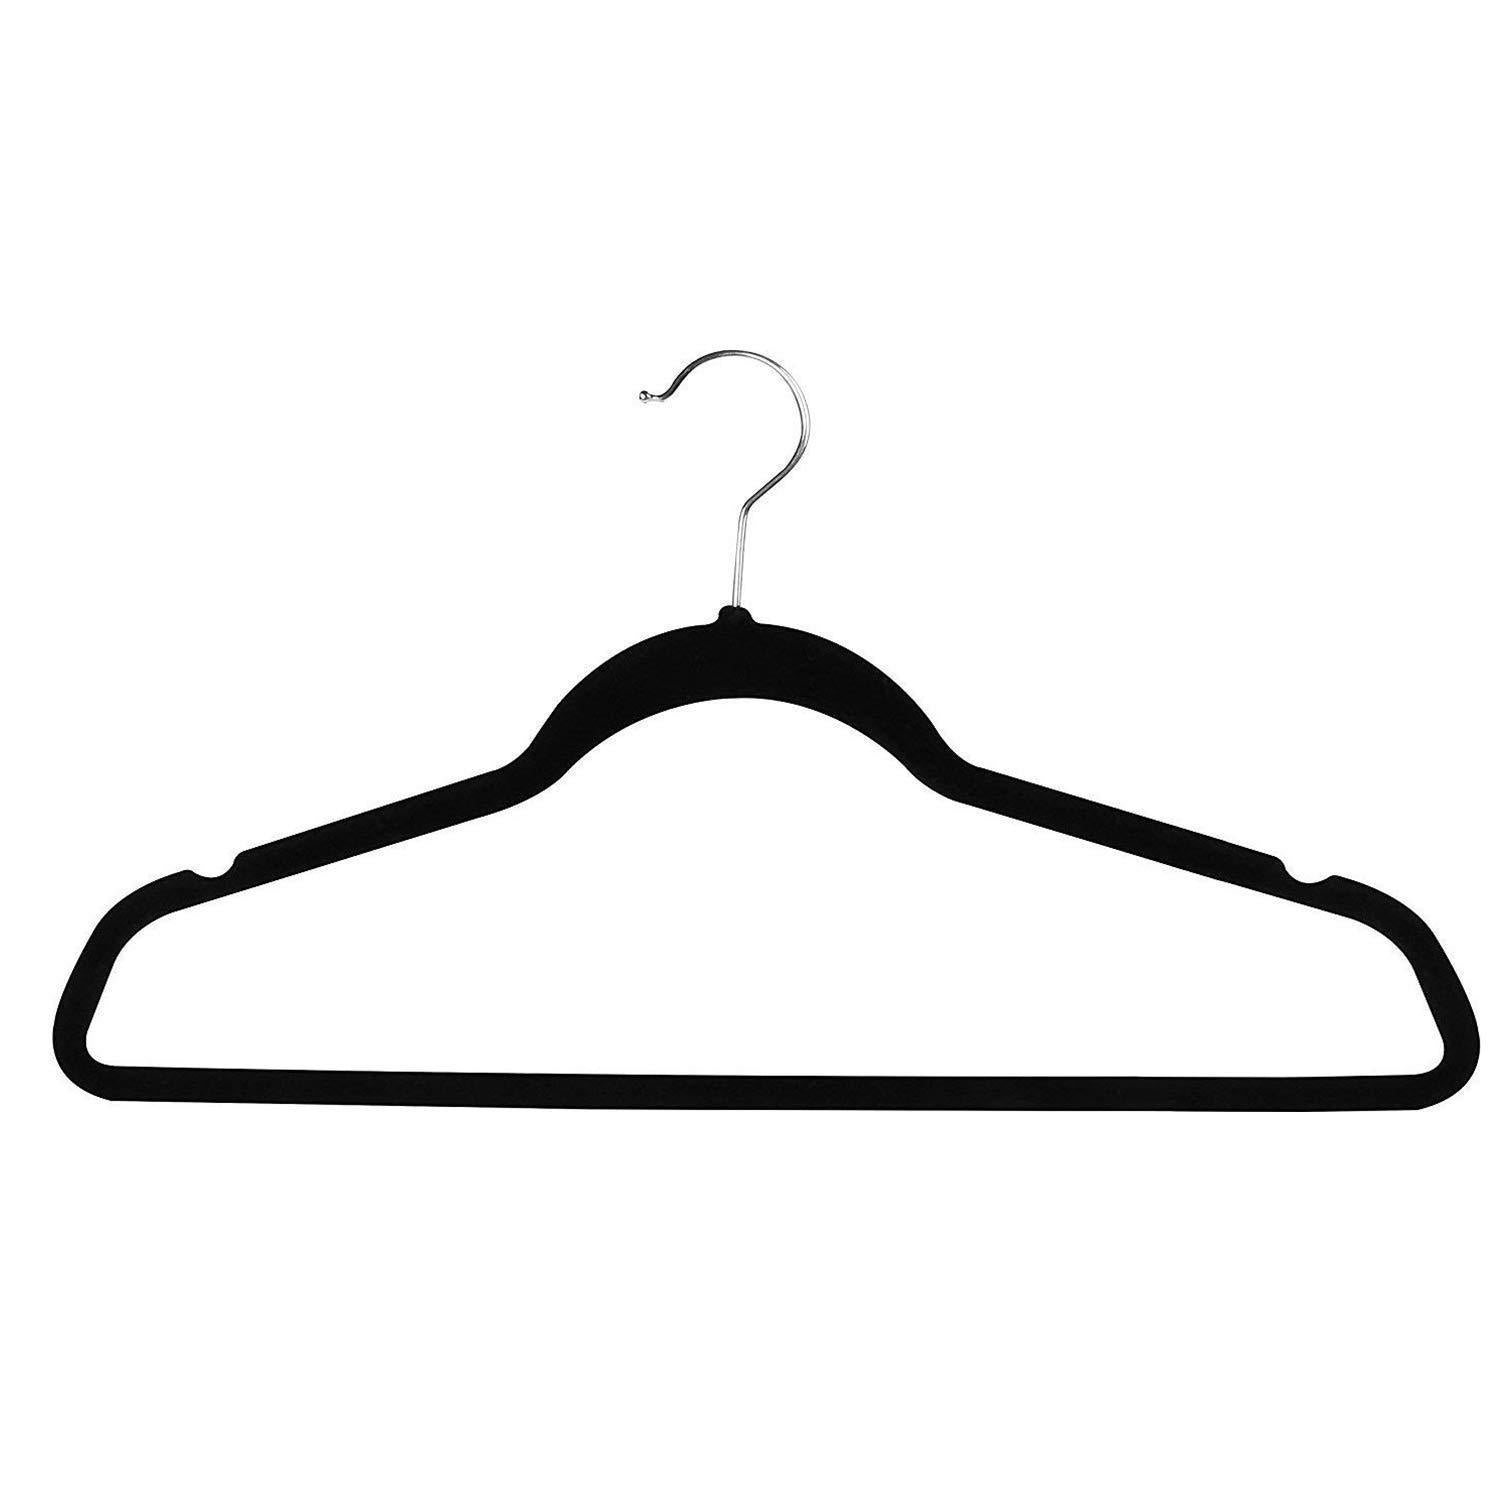 Buy now topgalaxy z velvet suit hangers 20 pack closet clothes hangers non slip hangers for coat hanger pants hangers dorm hangers black